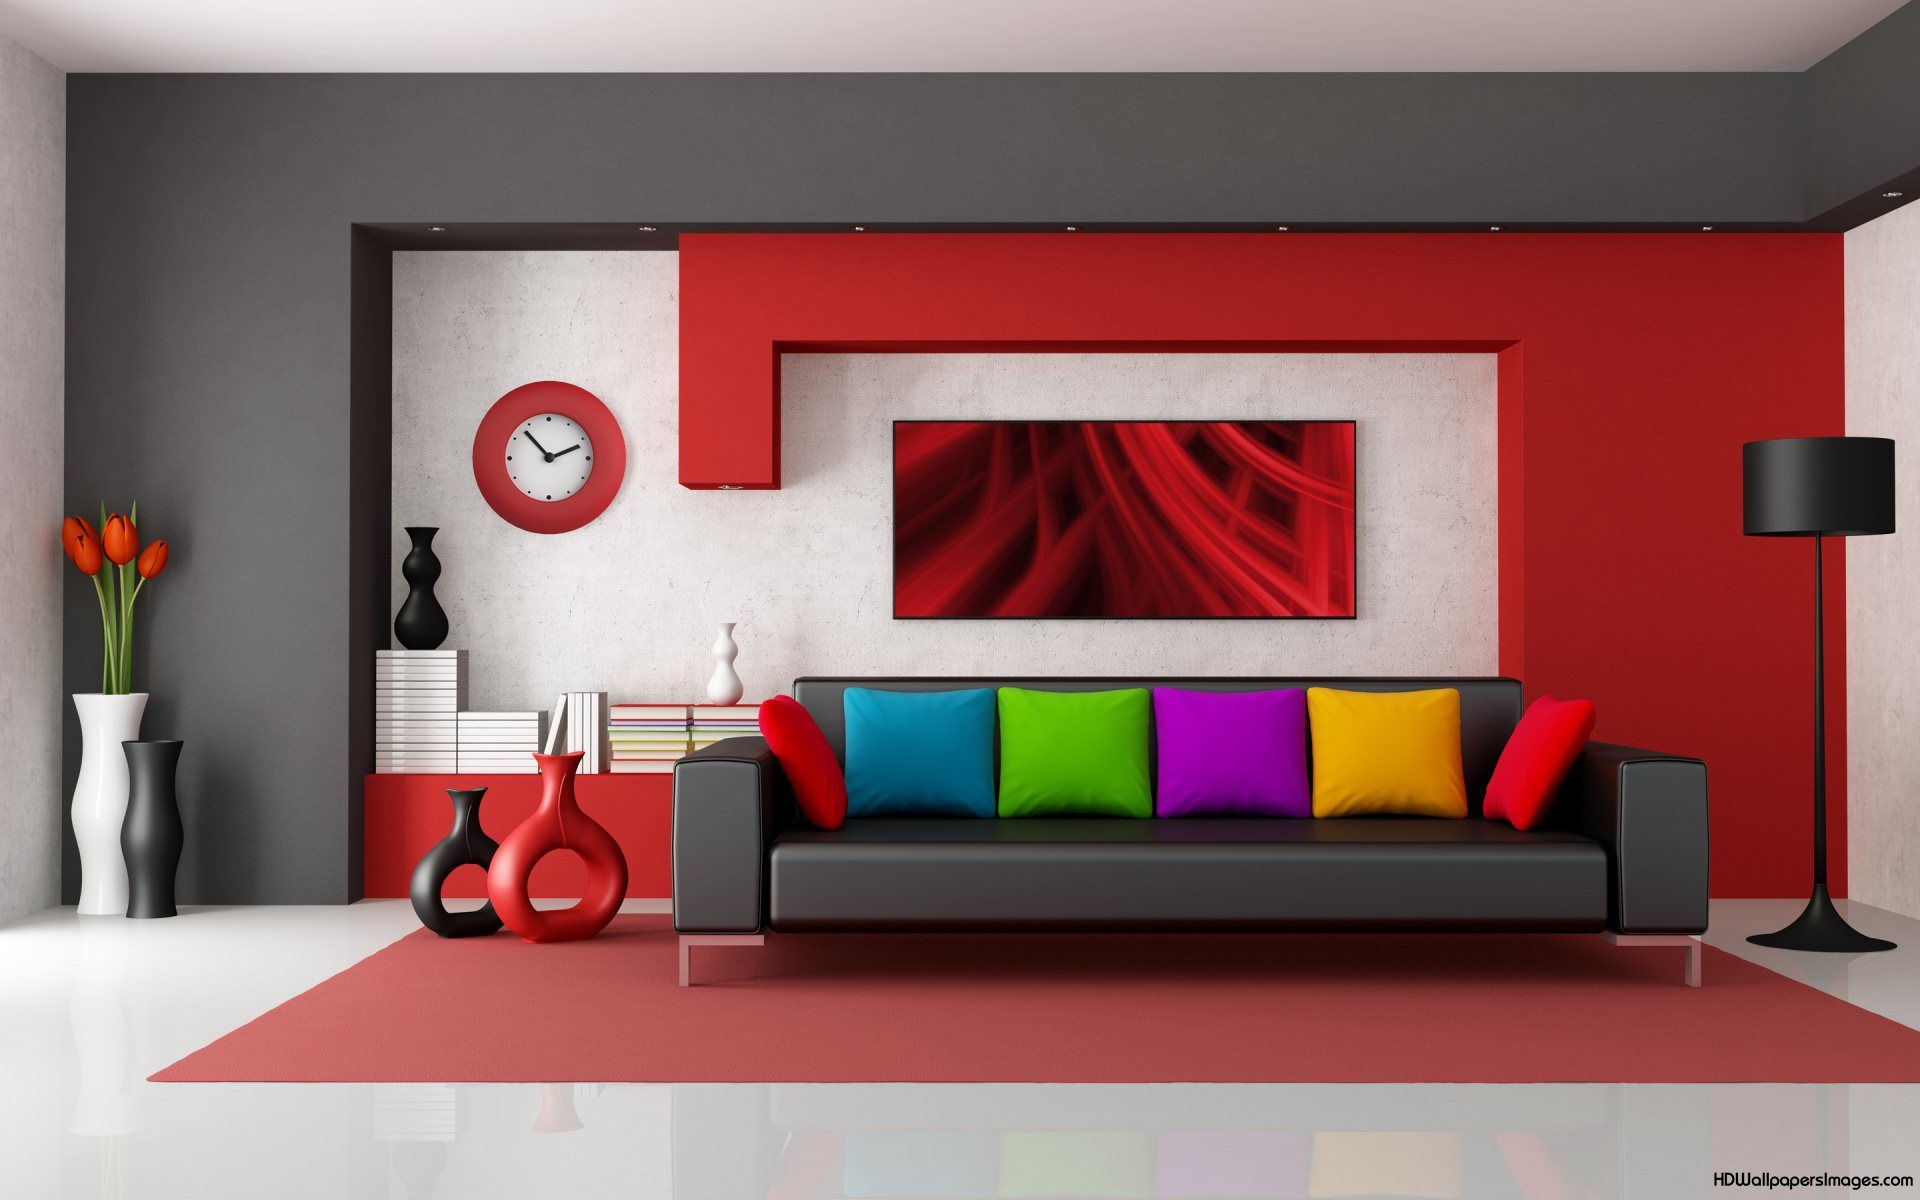 Interior design for our home - Decoration